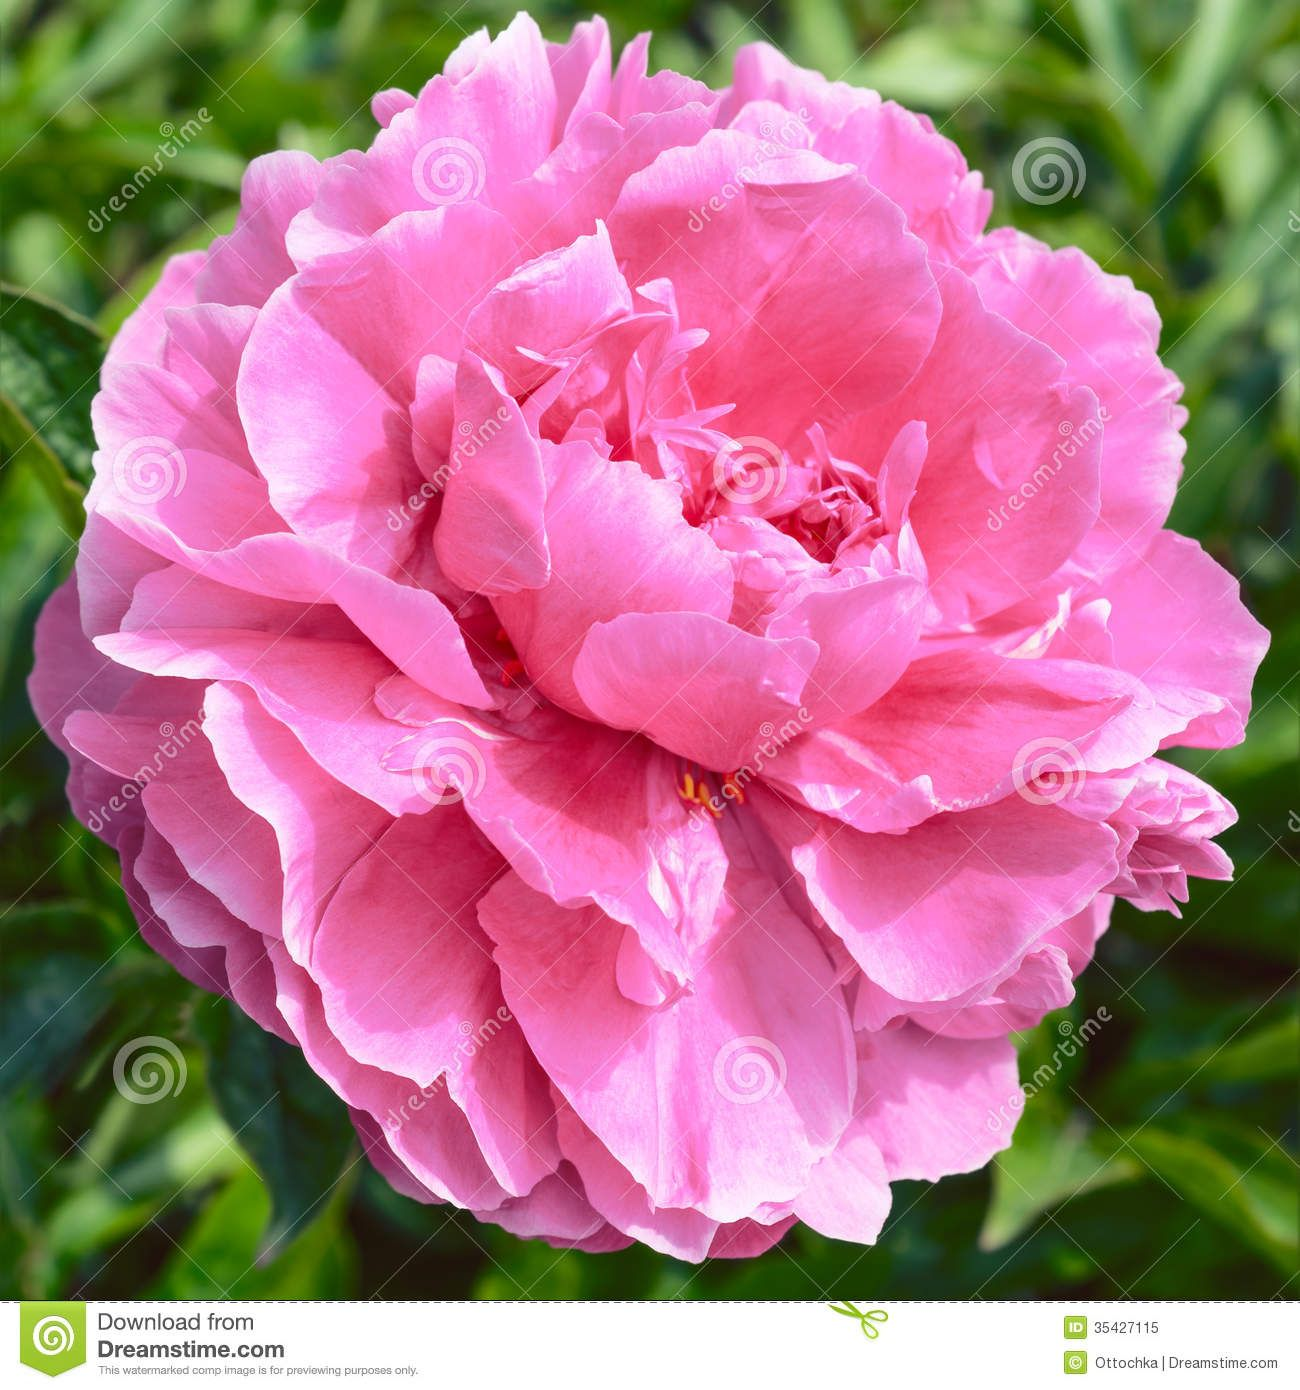 Imagem relacionada botnica e jardinagem pinterest peony it produces large deep rose pink double flowers which fade to a paler pink towards the edges mightylinksfo Gallery